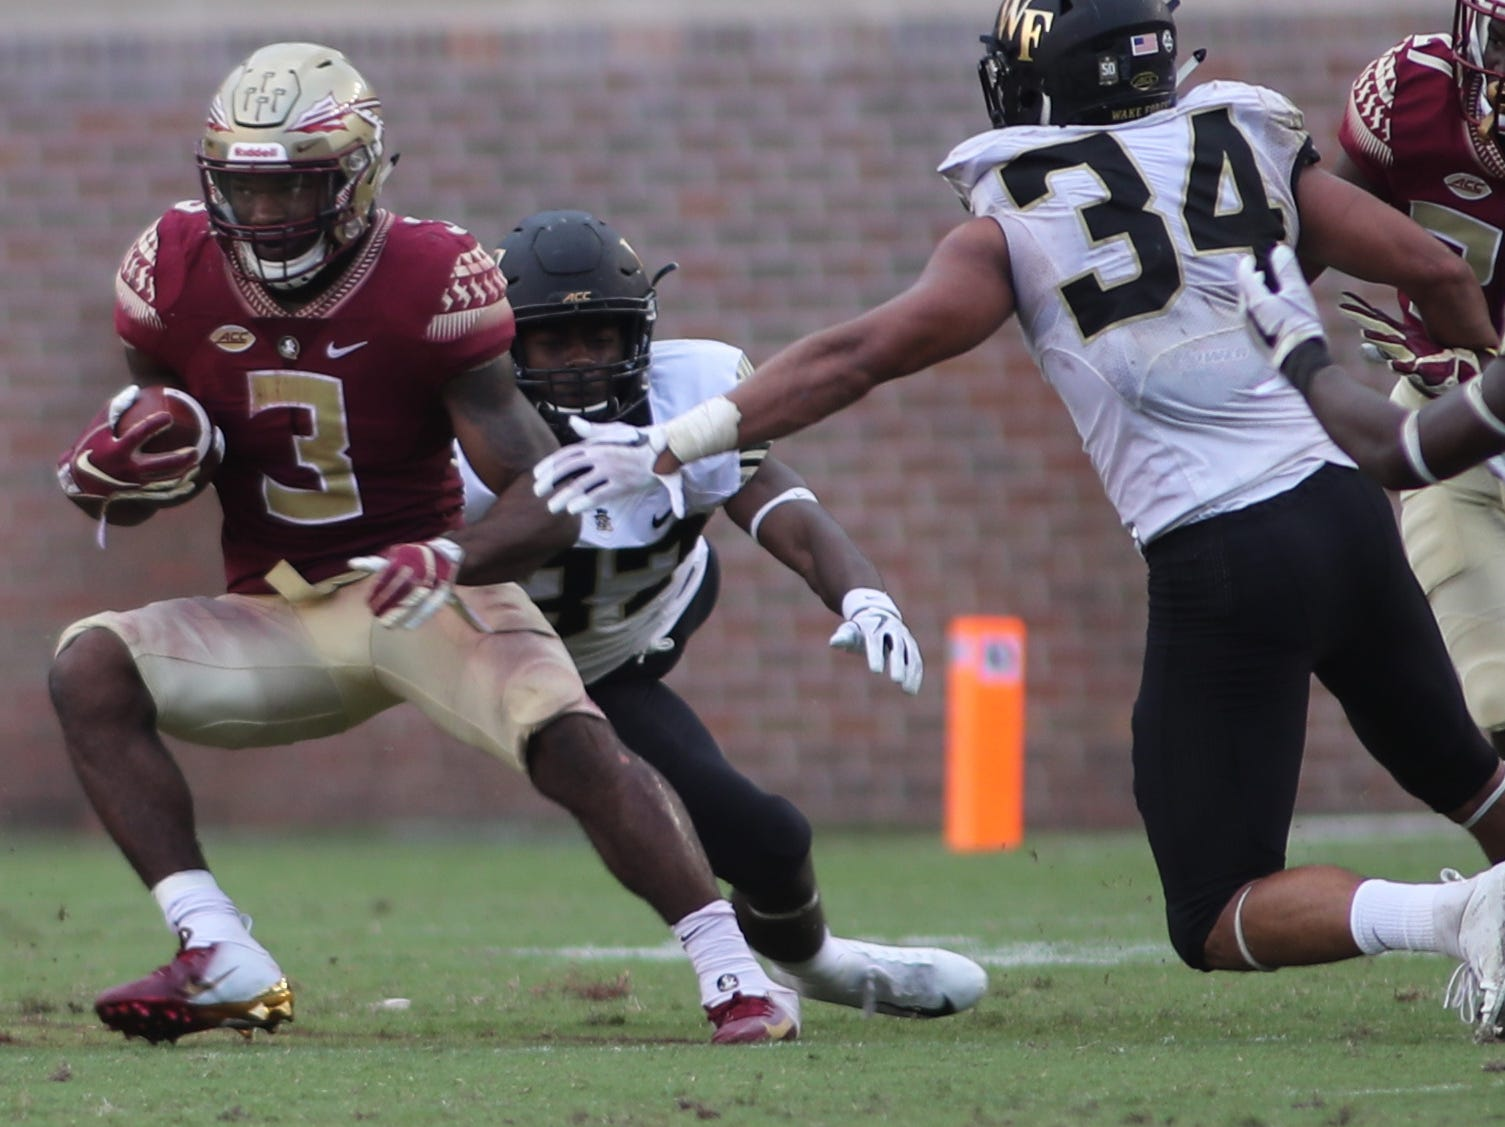 Florida State Seminoles running back Cam Akers (3) dodges defenders during FSU's homecoming game against Wake Forest at Doak S. Campbell Stadium Saturday, Oct. 20, 2018.